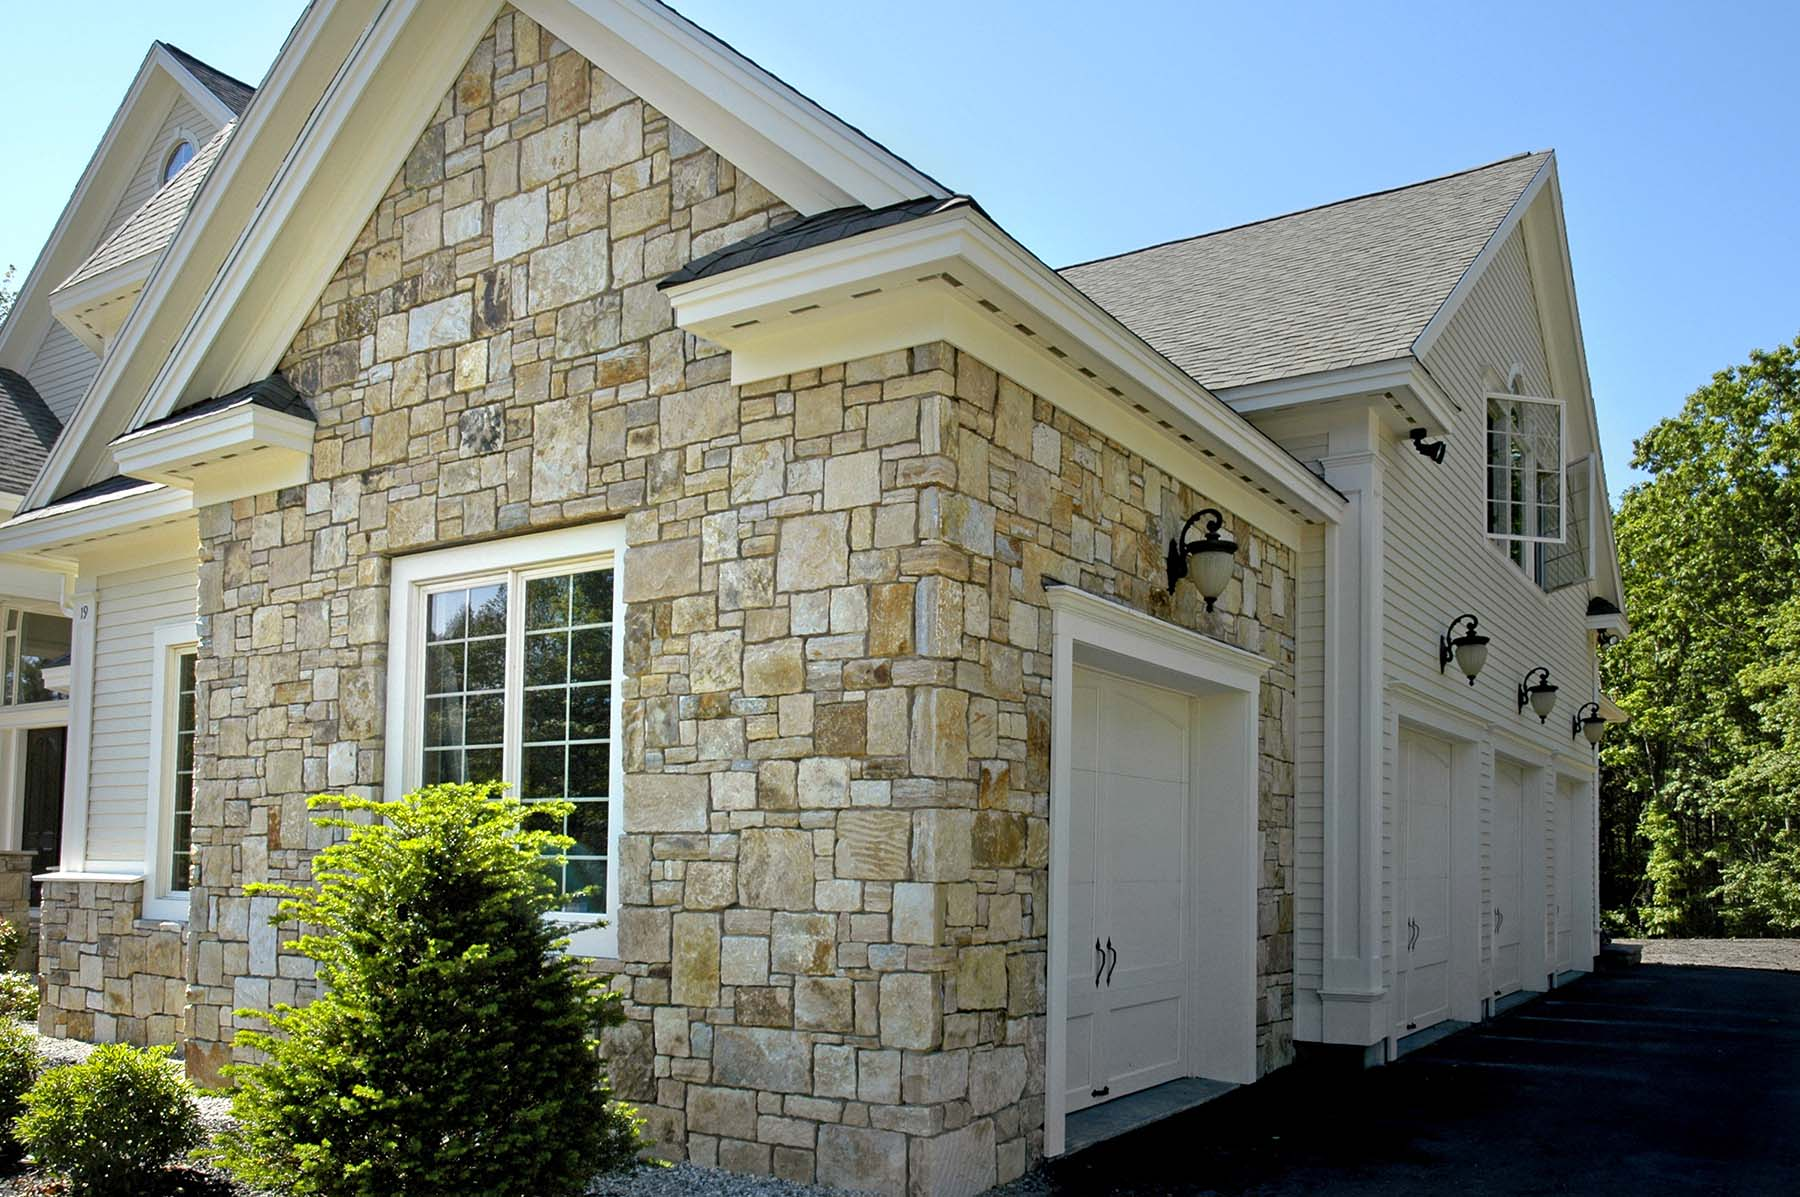 Residential Home with South Bay Quartzite natural building stone exterior